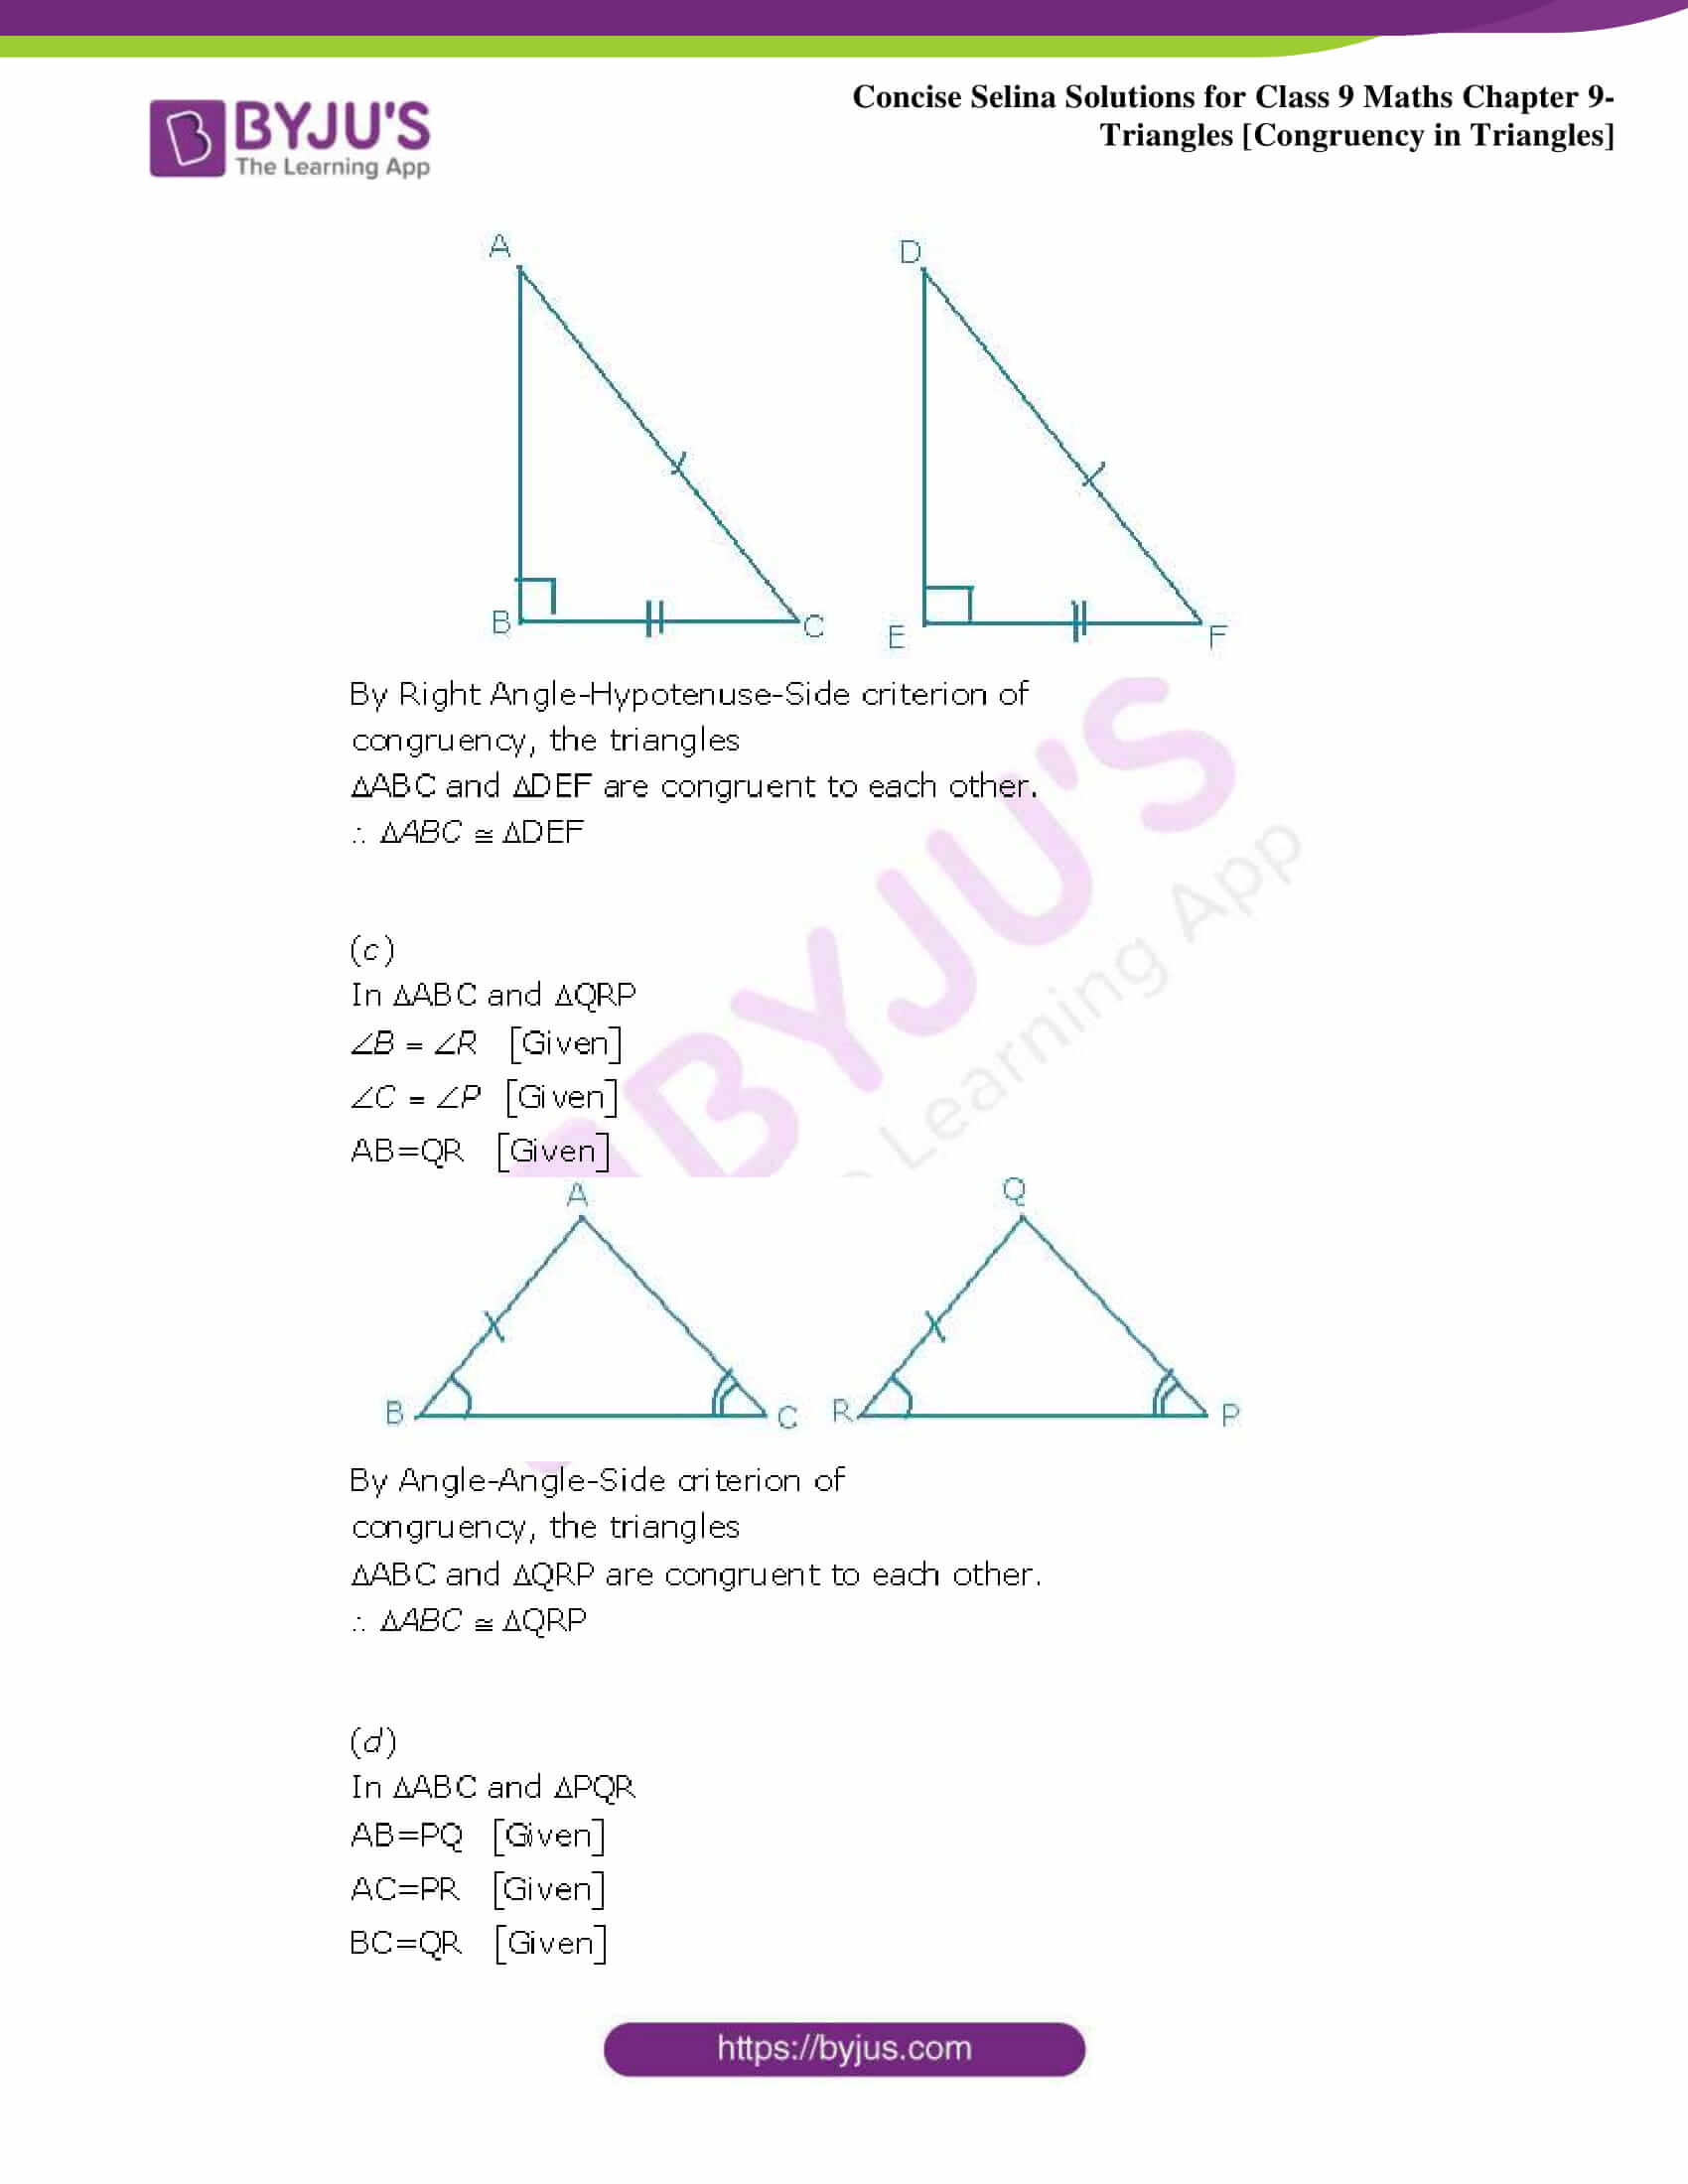 Selina Solutions Class 9 Maths Chapter 9 Triangles part 02